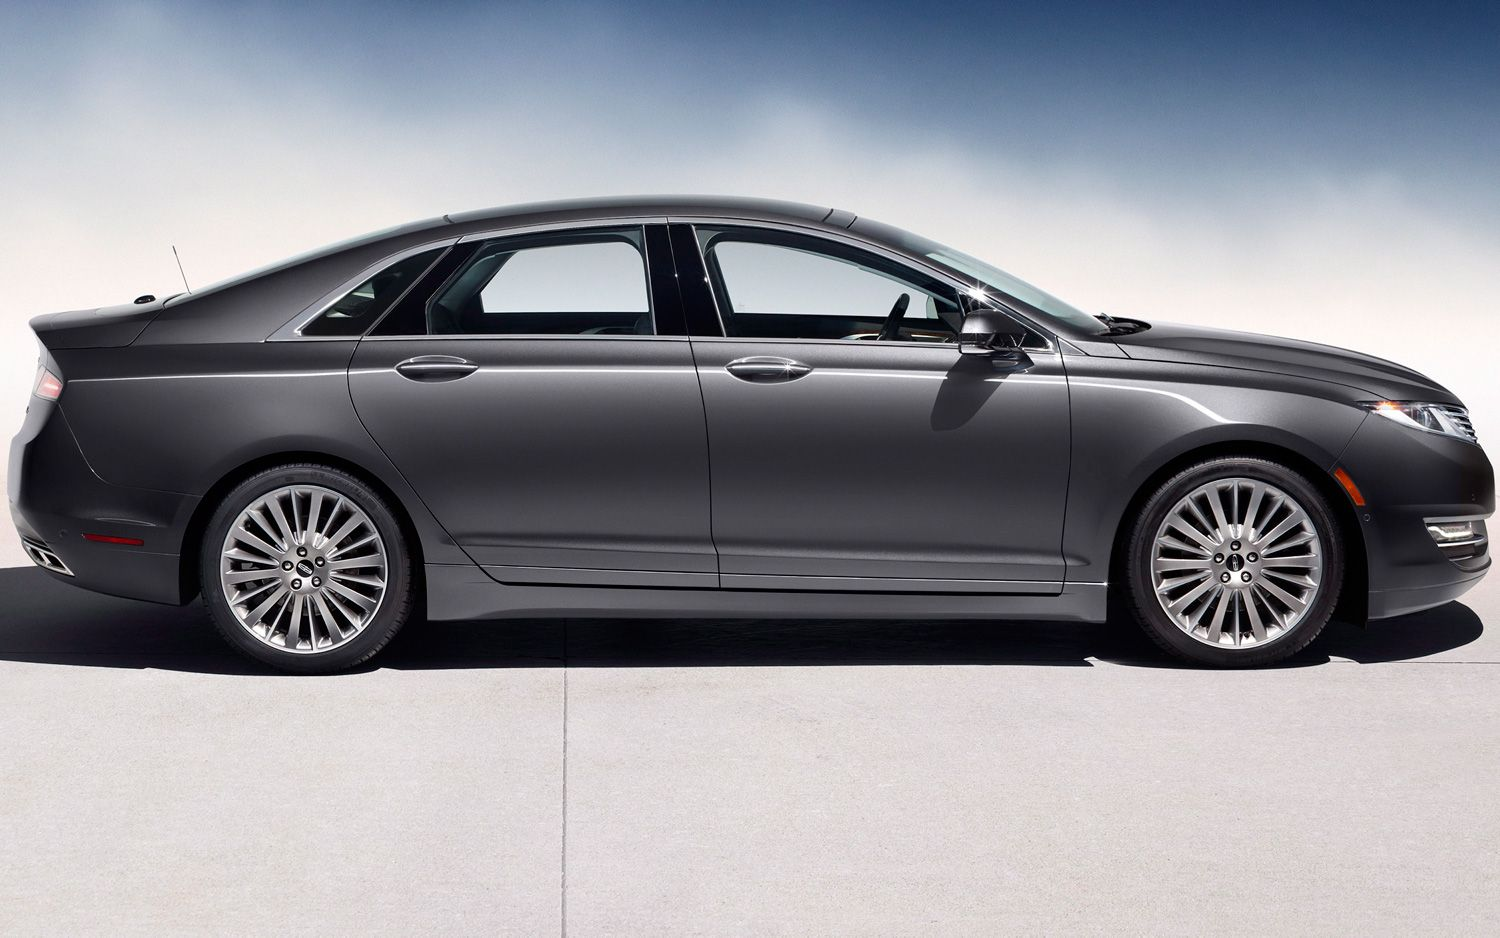 2013 Lincoln MKZ Side1